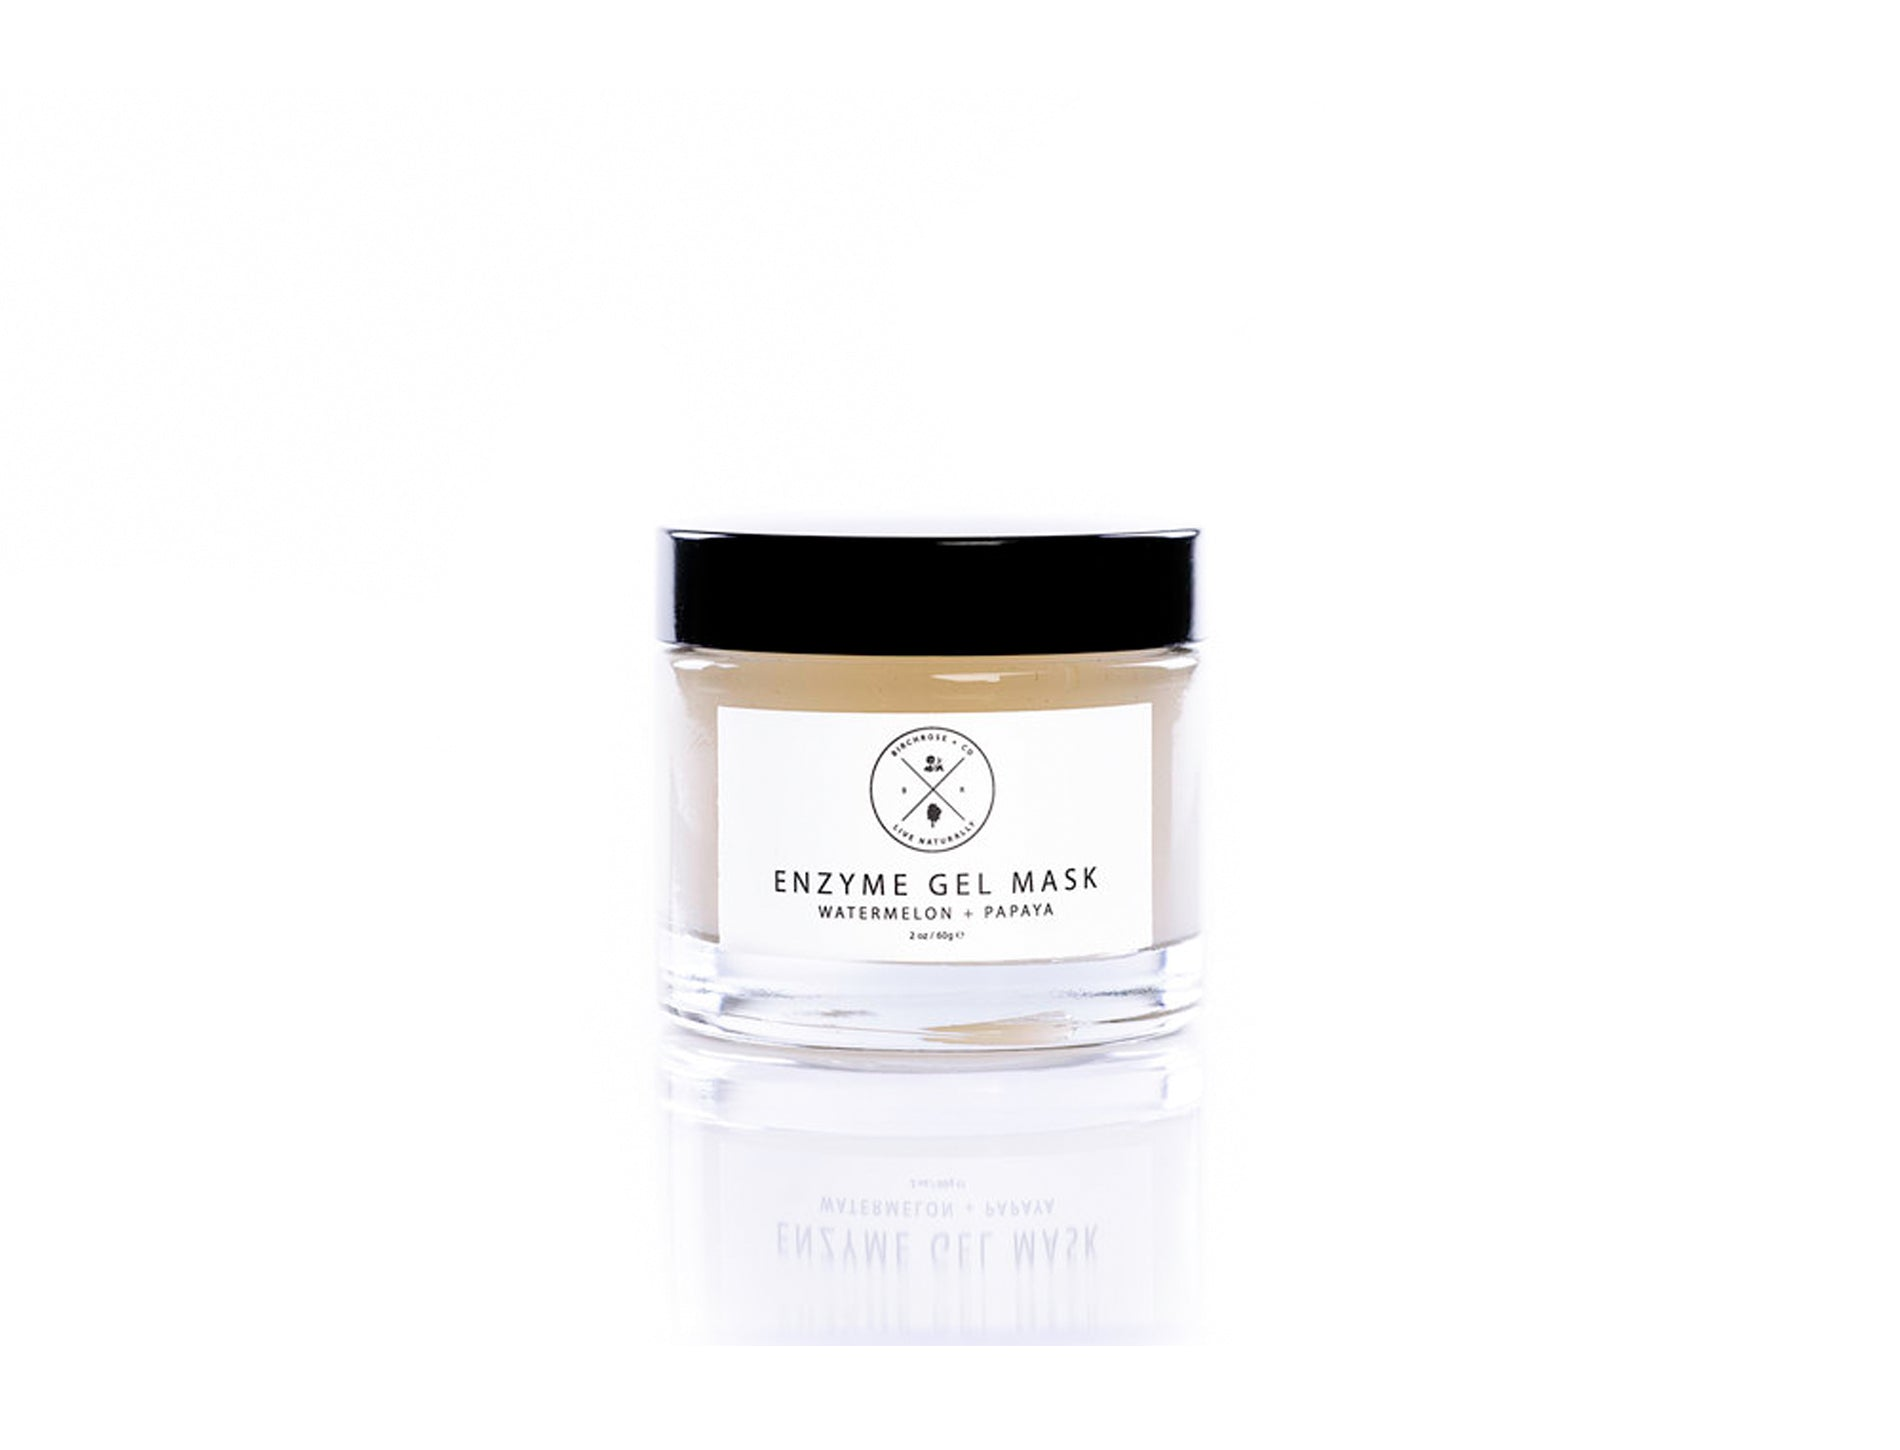 Birchrose + Co. - Enzyme Gel Mask - Good Soul Shop